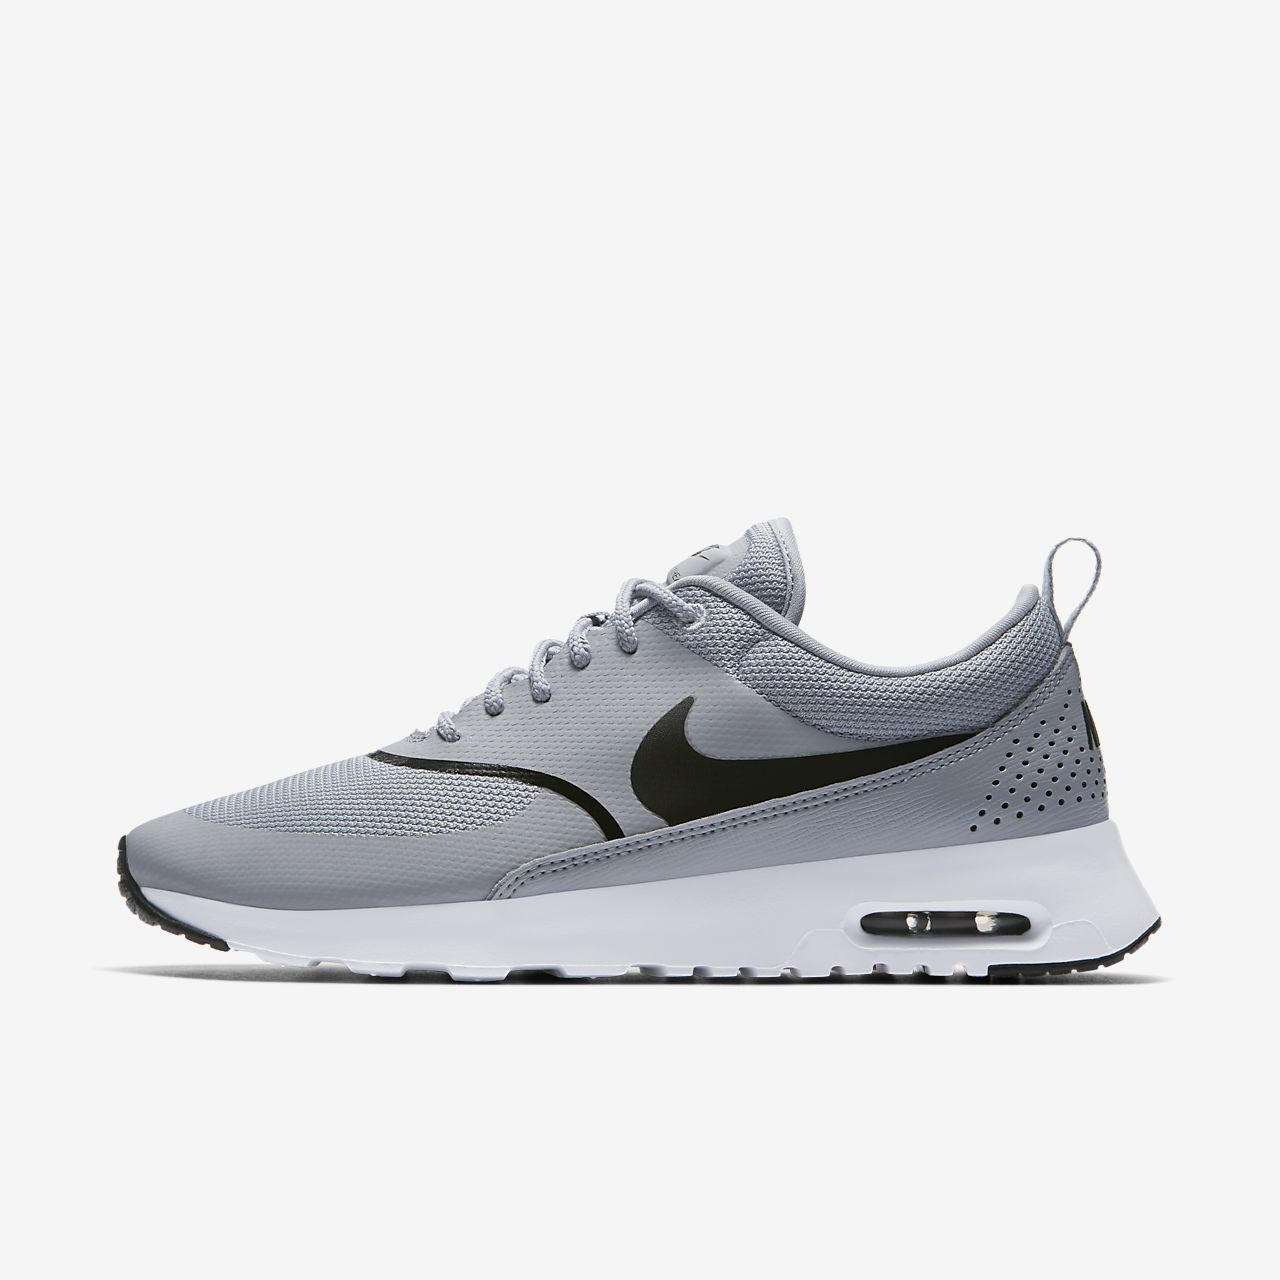 reputable site 177d8 7faaa ... Nike Air Max Thea Women s Shoe